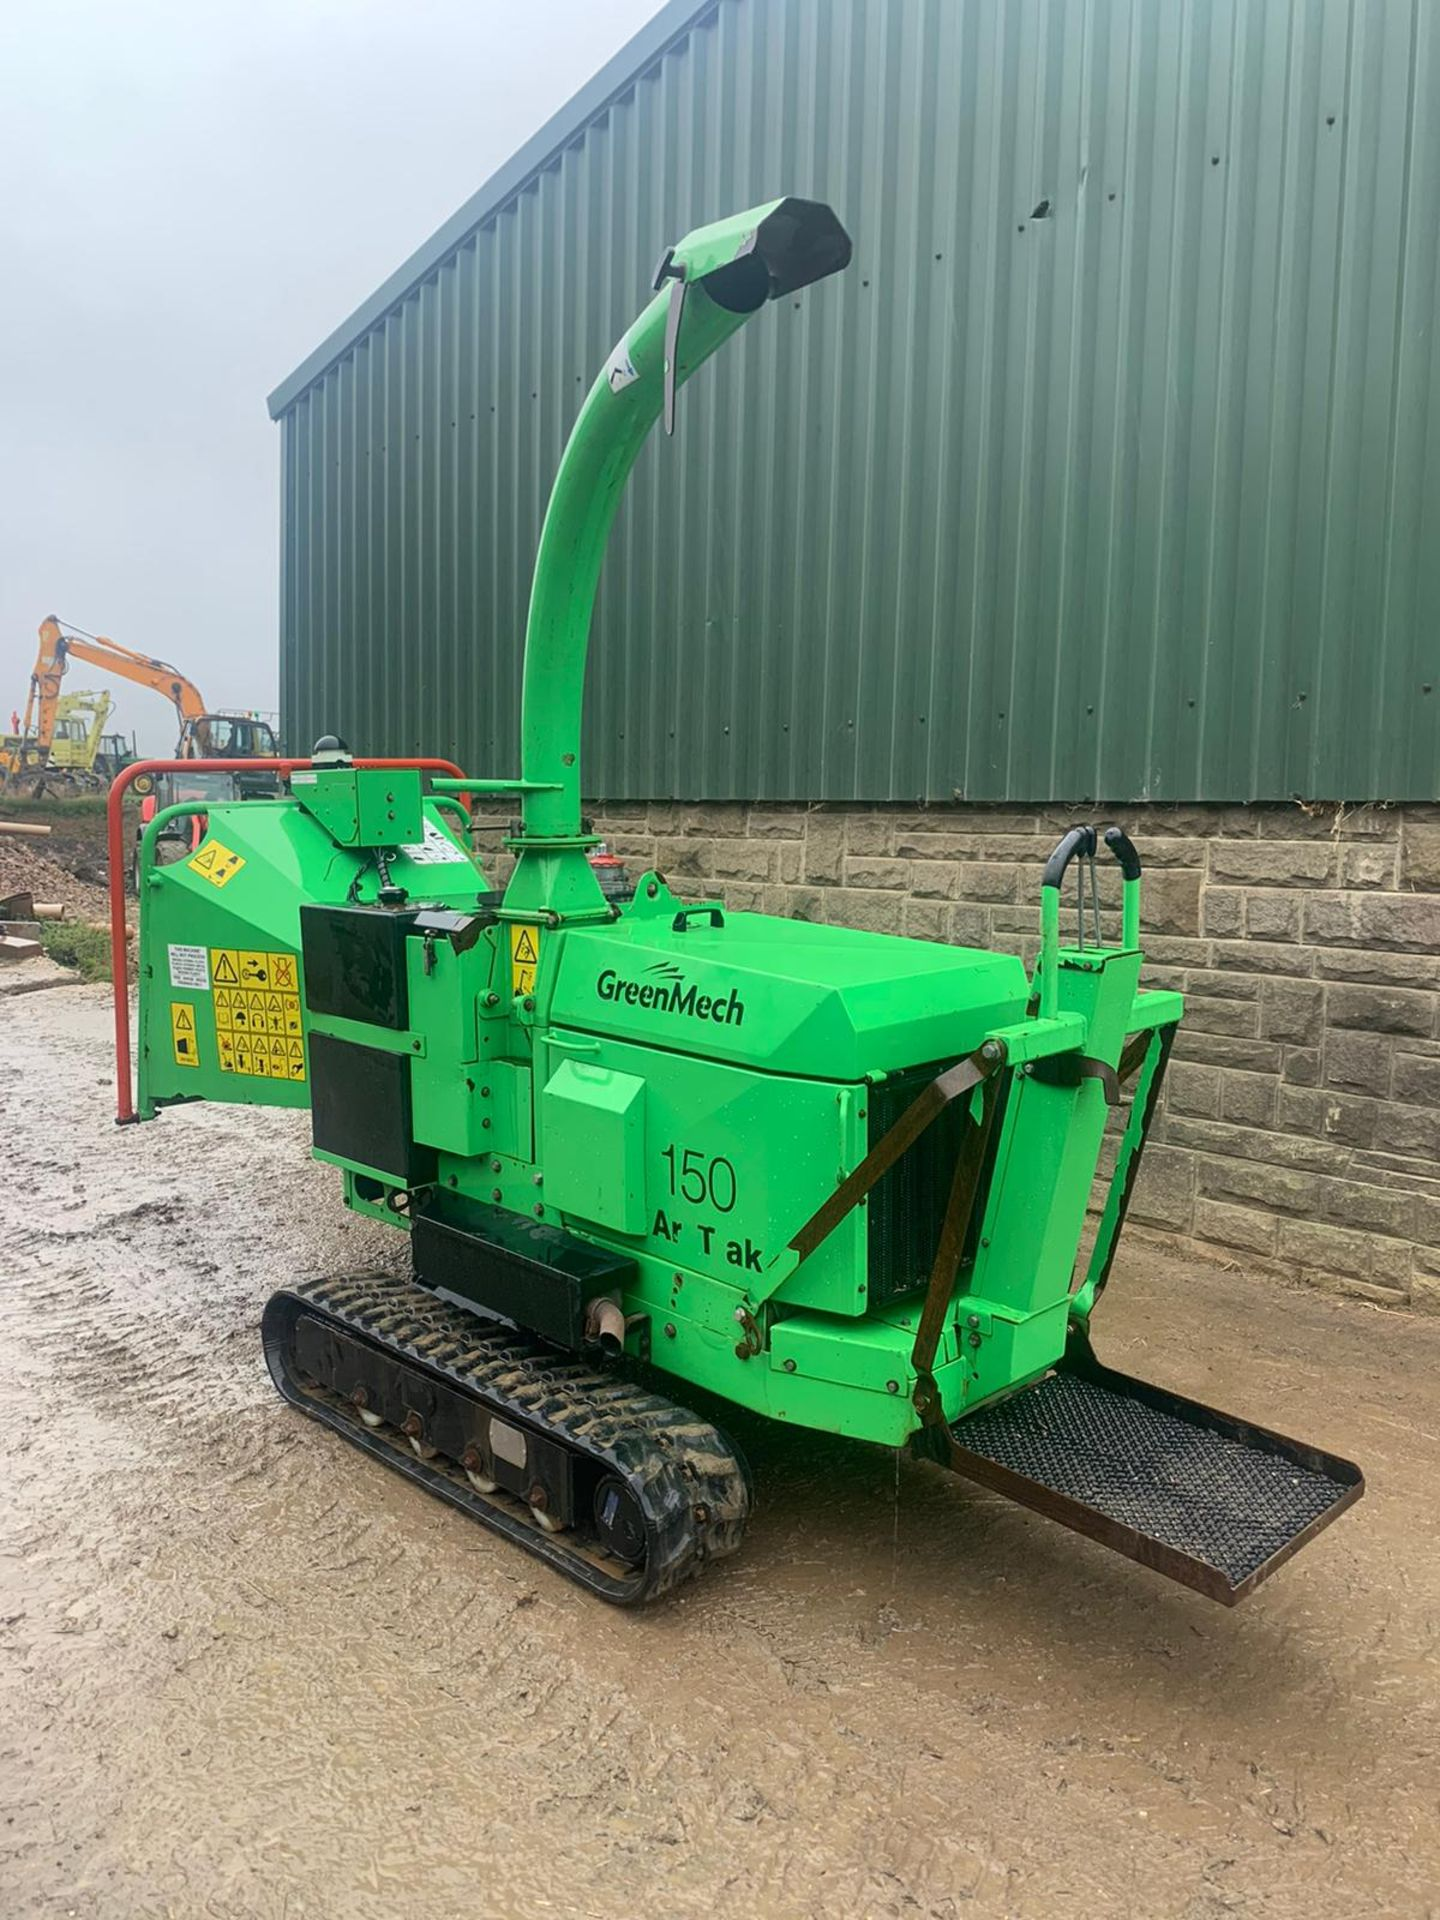 2014 GREENMECH ARB TRACK 150-35 STAND ON / WALK BEHIND WOOD CHIPPER, RUNS, DRIVES & CHIPS *PLUS VAT* - Image 4 of 5